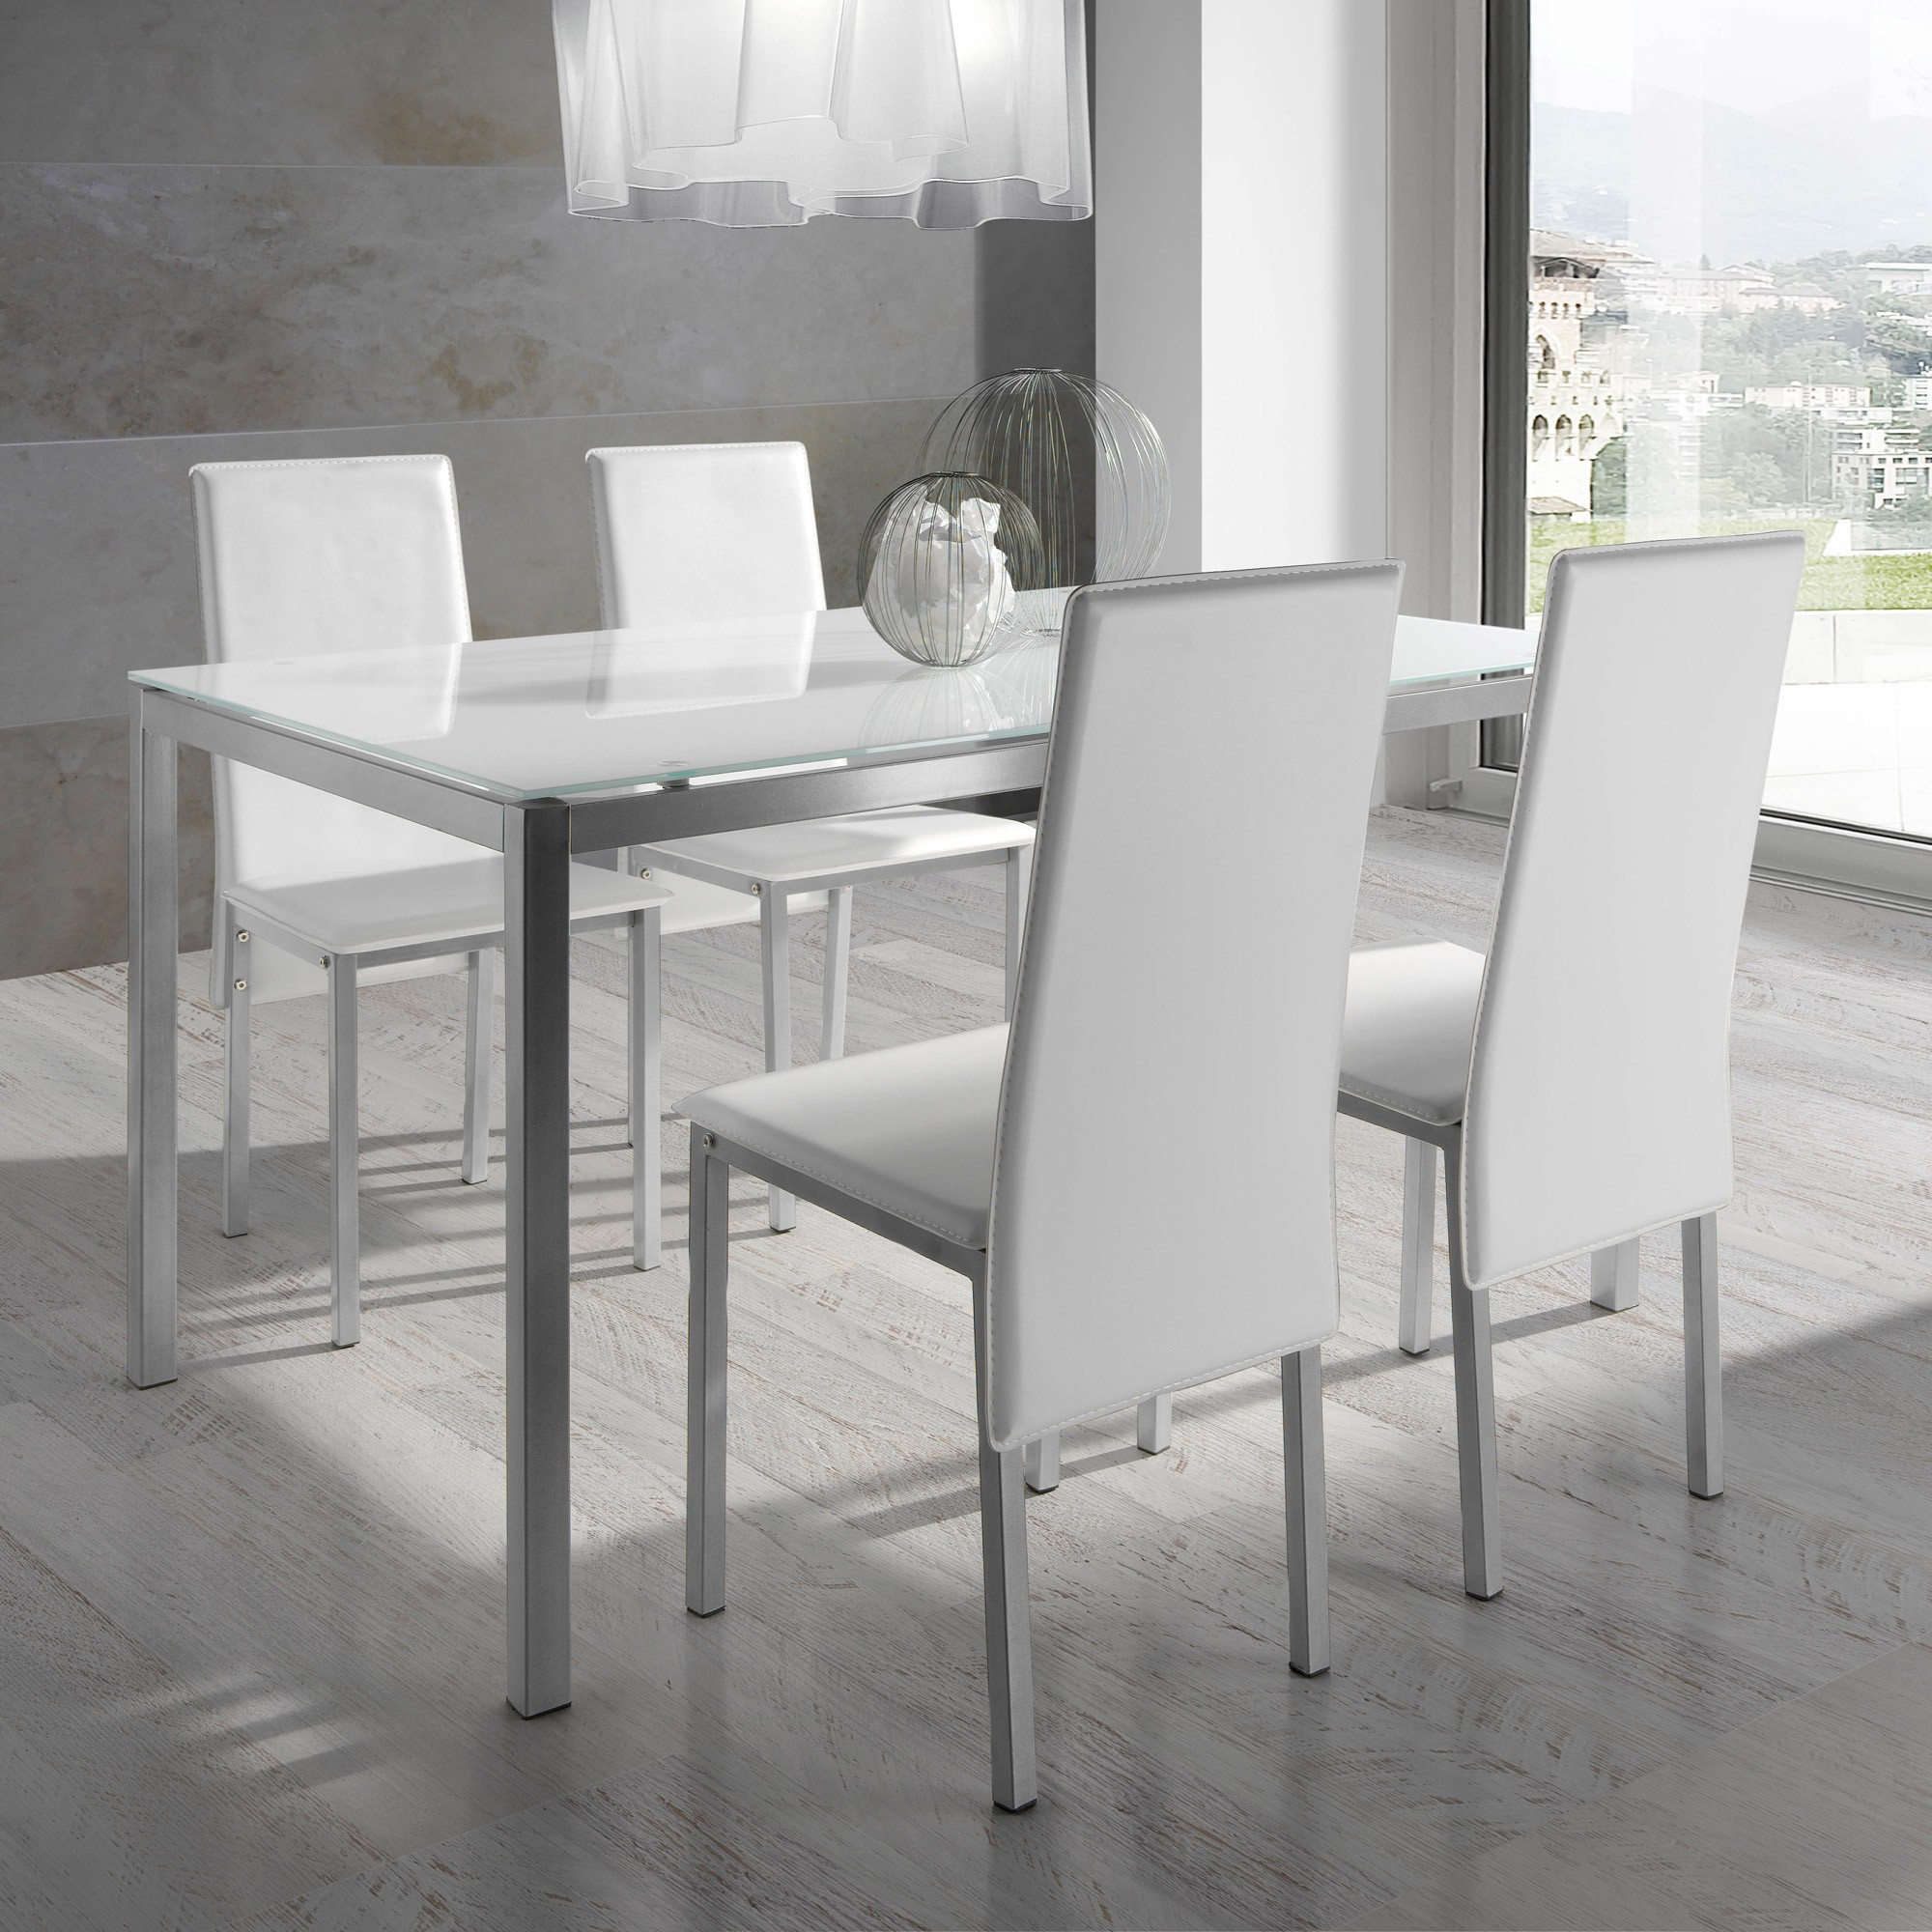 Ensemble table et chaise salle a manger but chaise - Ensemble table et chaise de salle a manger ...